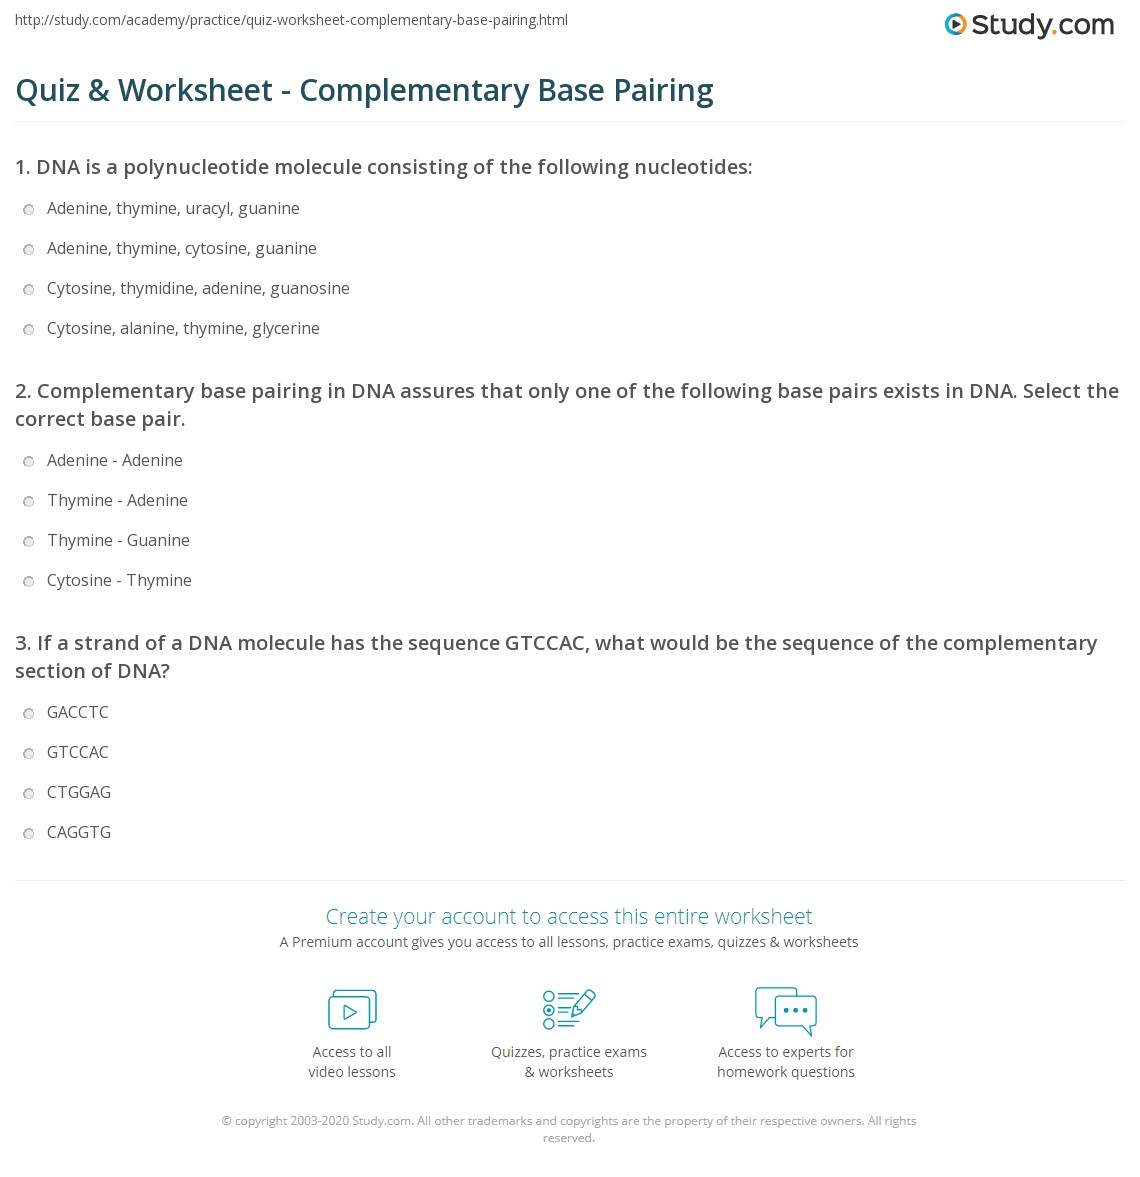 quiz worksheet complementary base pairing. Black Bedroom Furniture Sets. Home Design Ideas